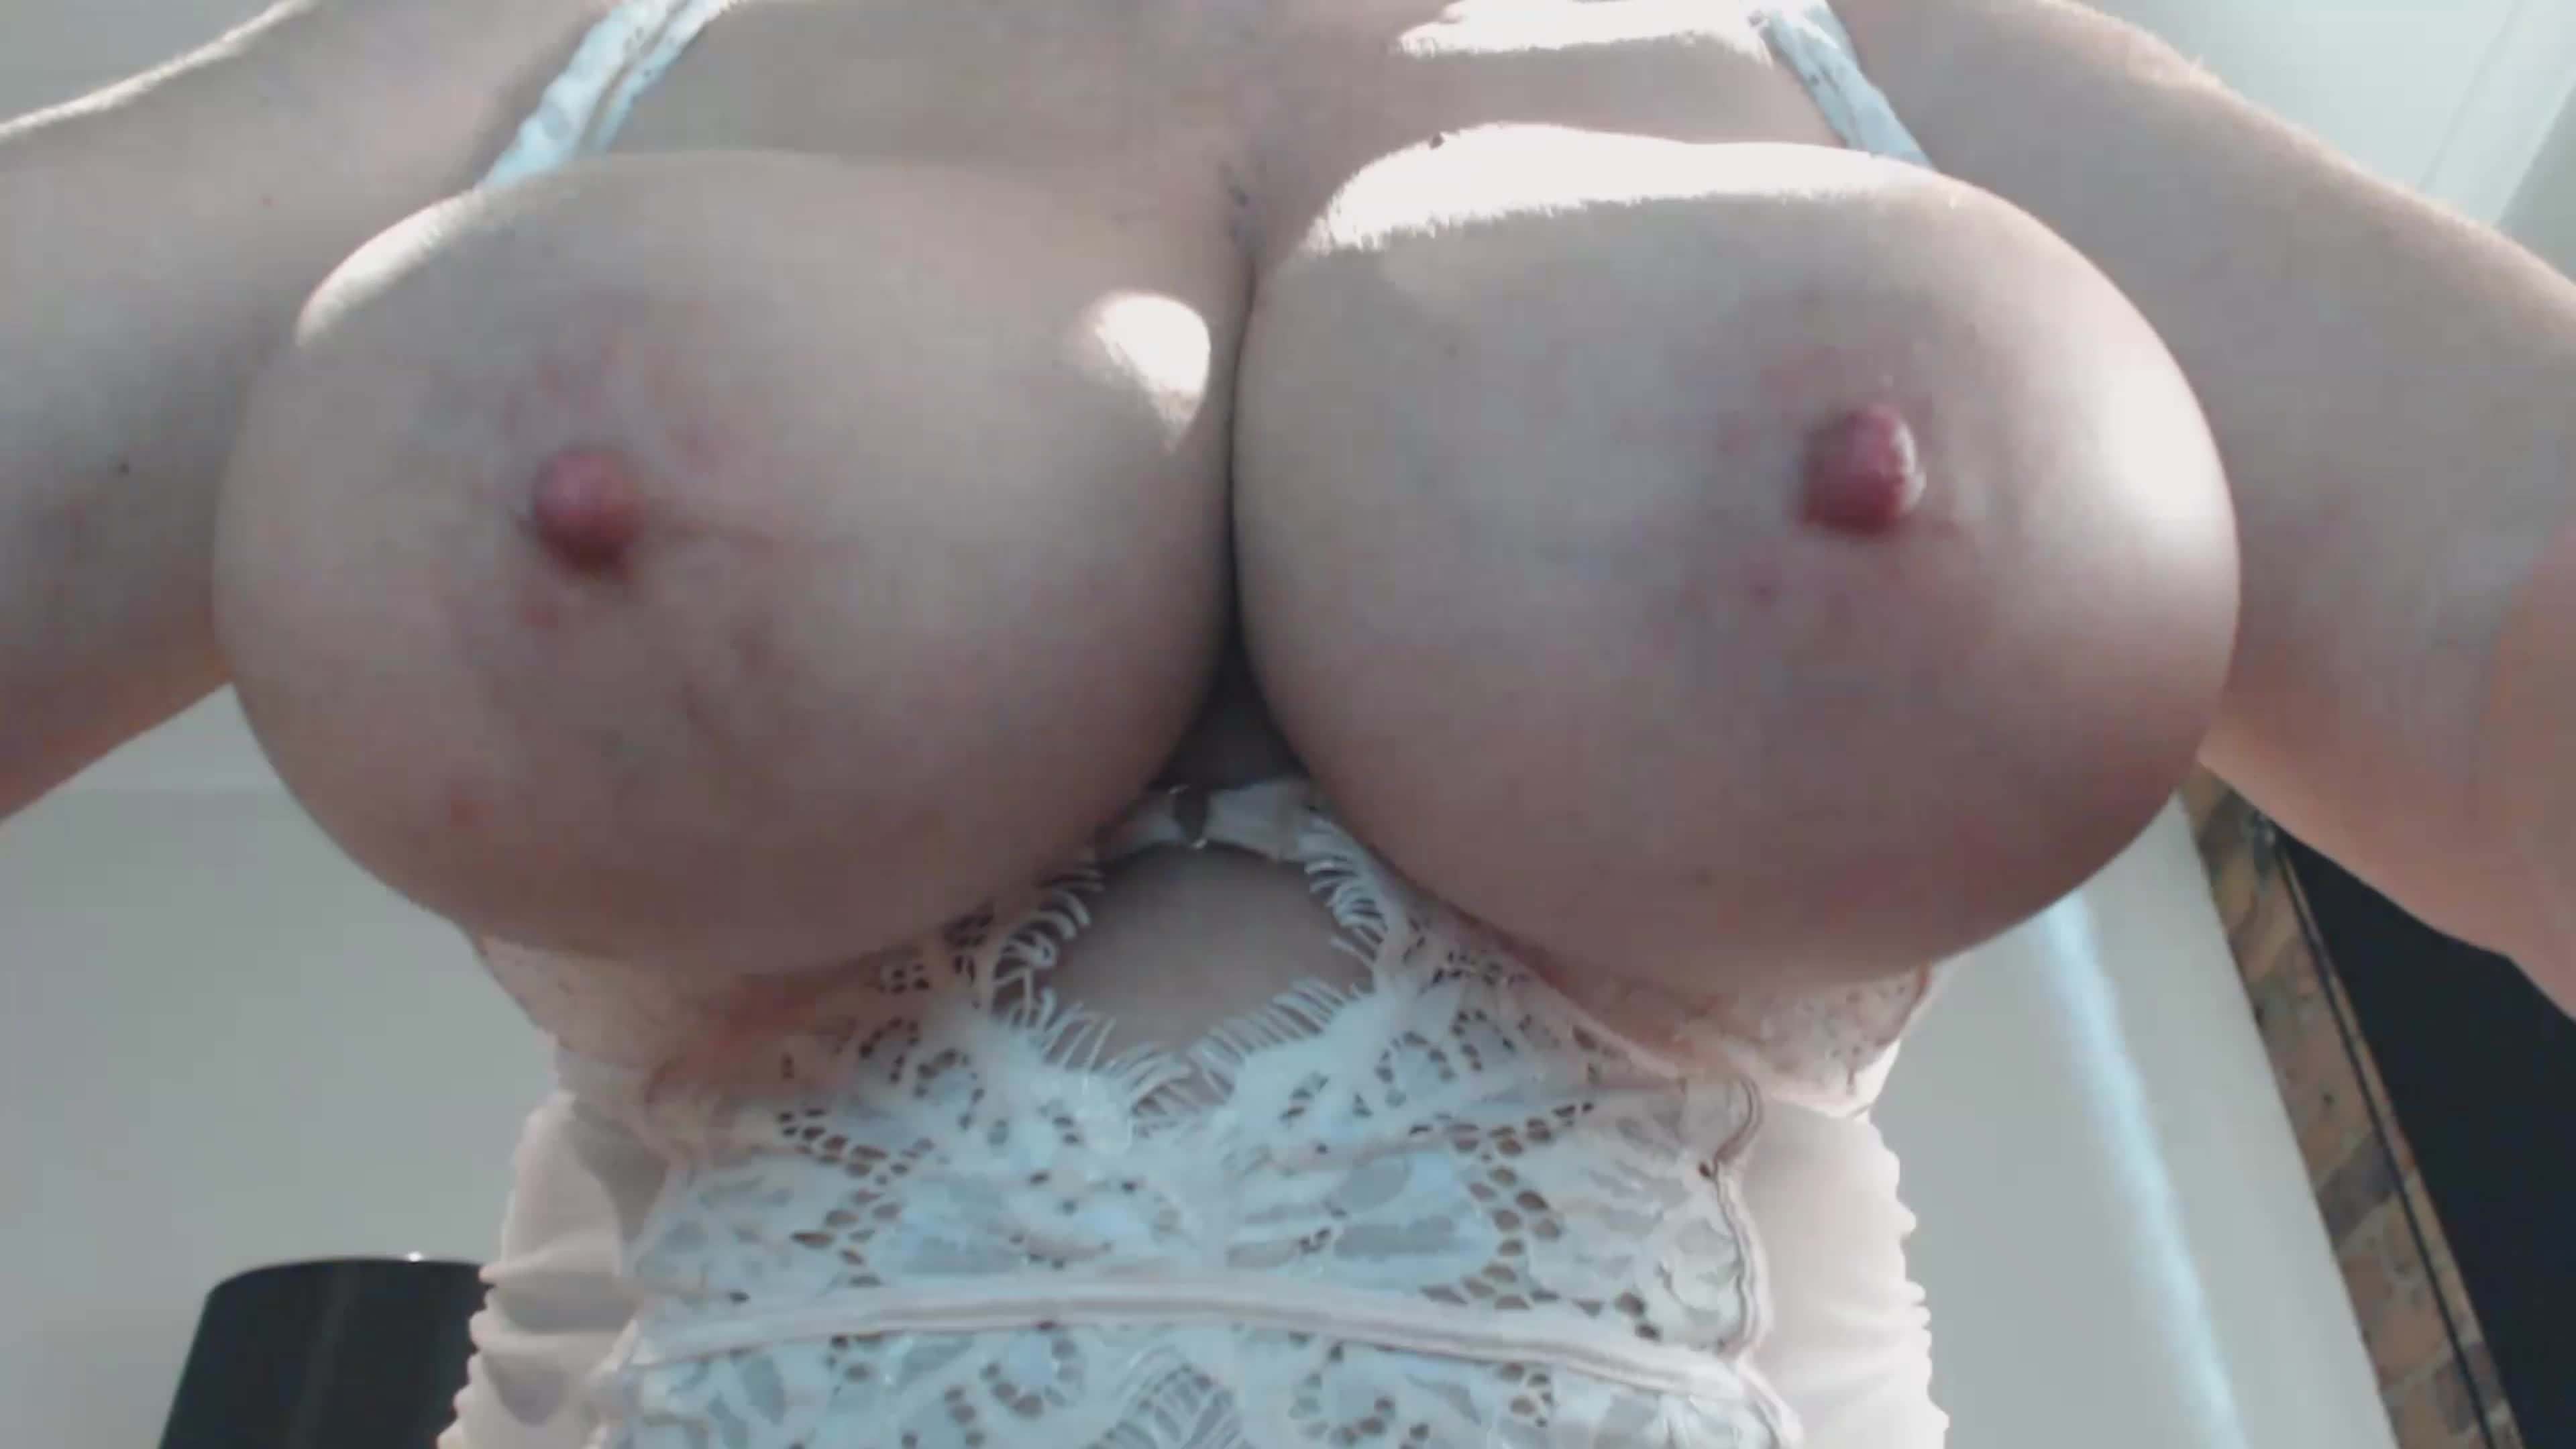 My Big Boobs hanging down in front of your face as I ride you🤤 xx 54yo 🇦🇺💋